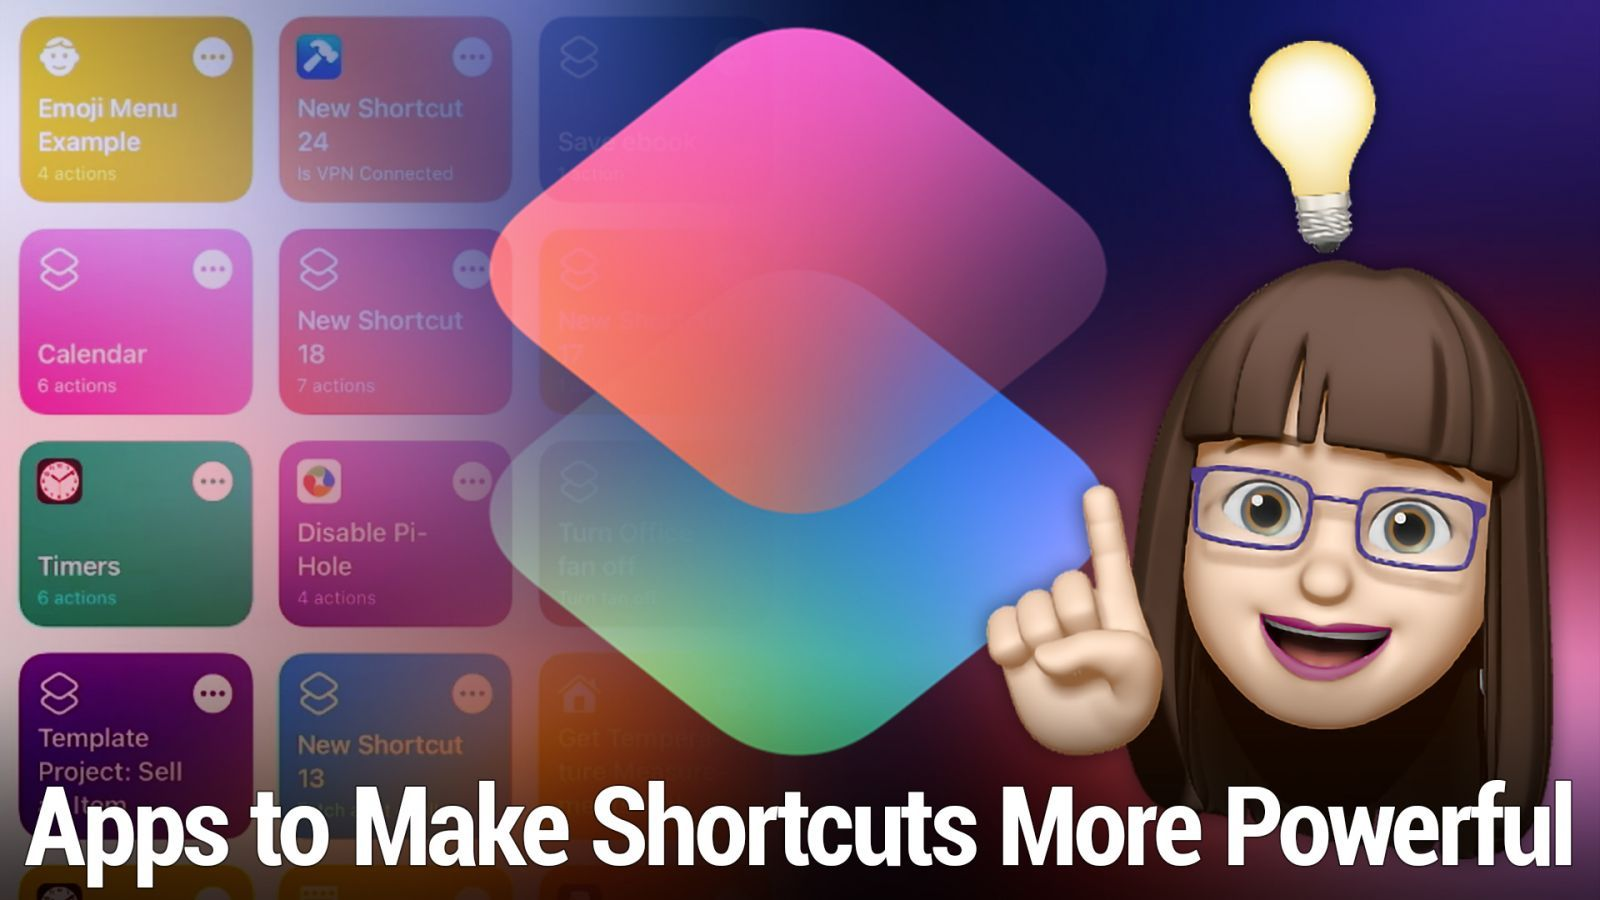 Make Shortcuts More Powerful With These Apps